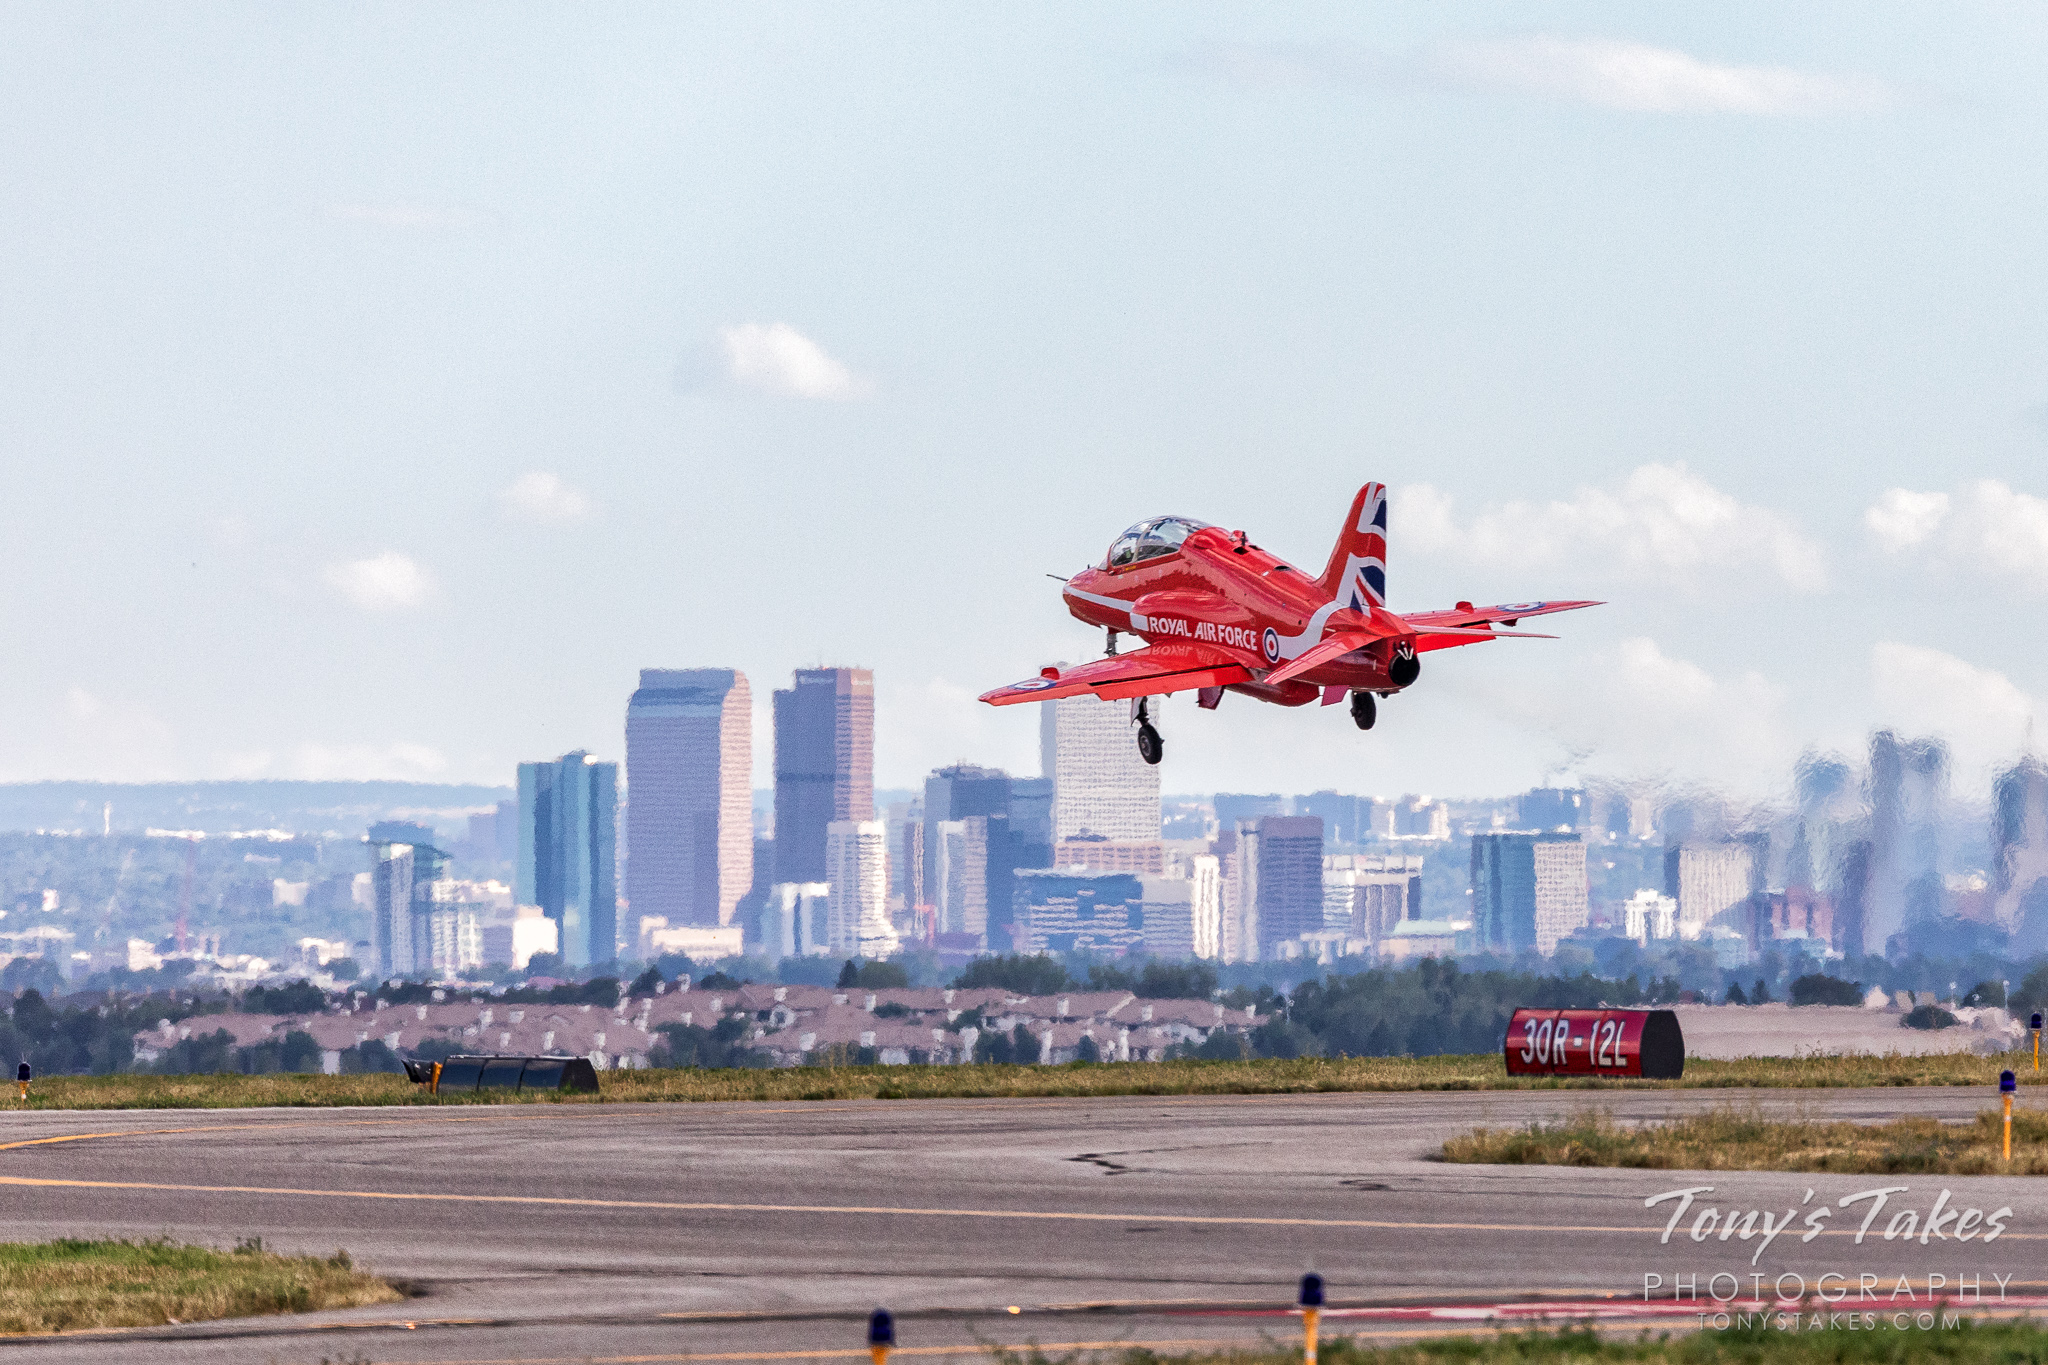 A Royal Air Force Red Arrow jet takes flight with Denver, Colorado in the background. (© Tony's Takes)